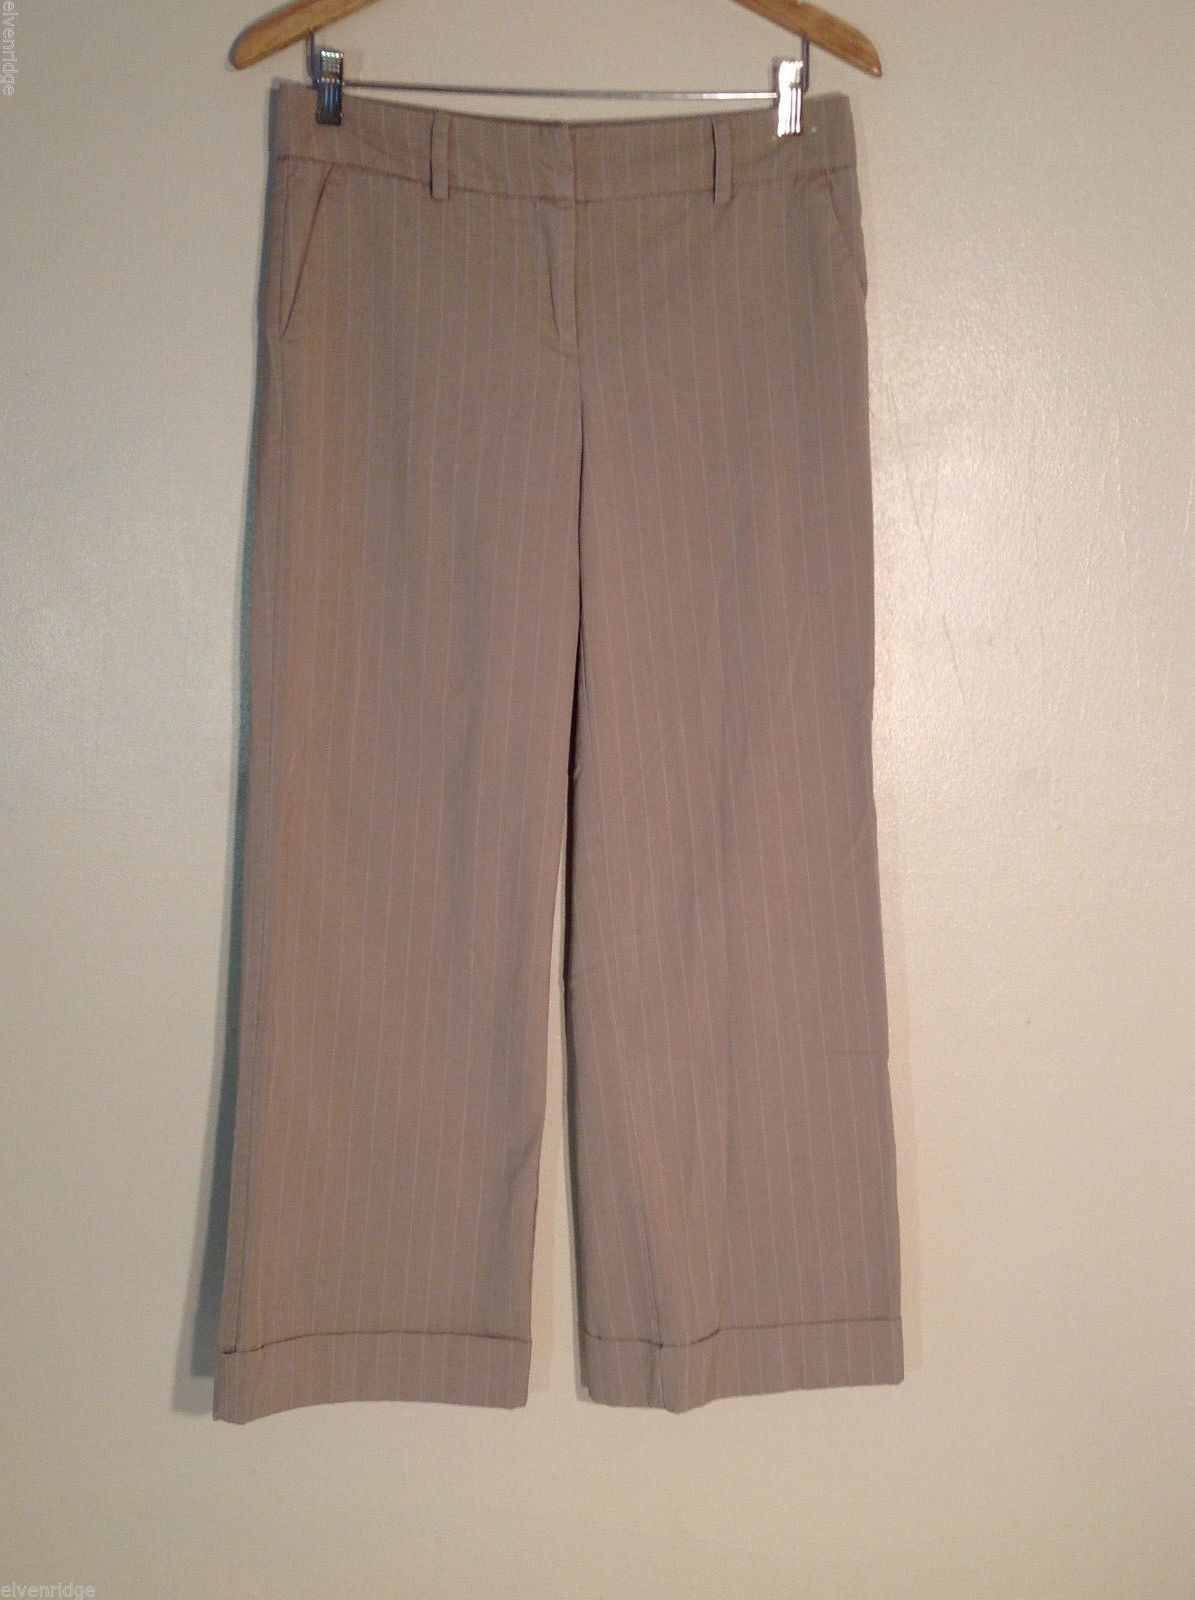 New York & Company Women's Petite Size 8 Dress Pants Tan Brown w/ Pinstripes